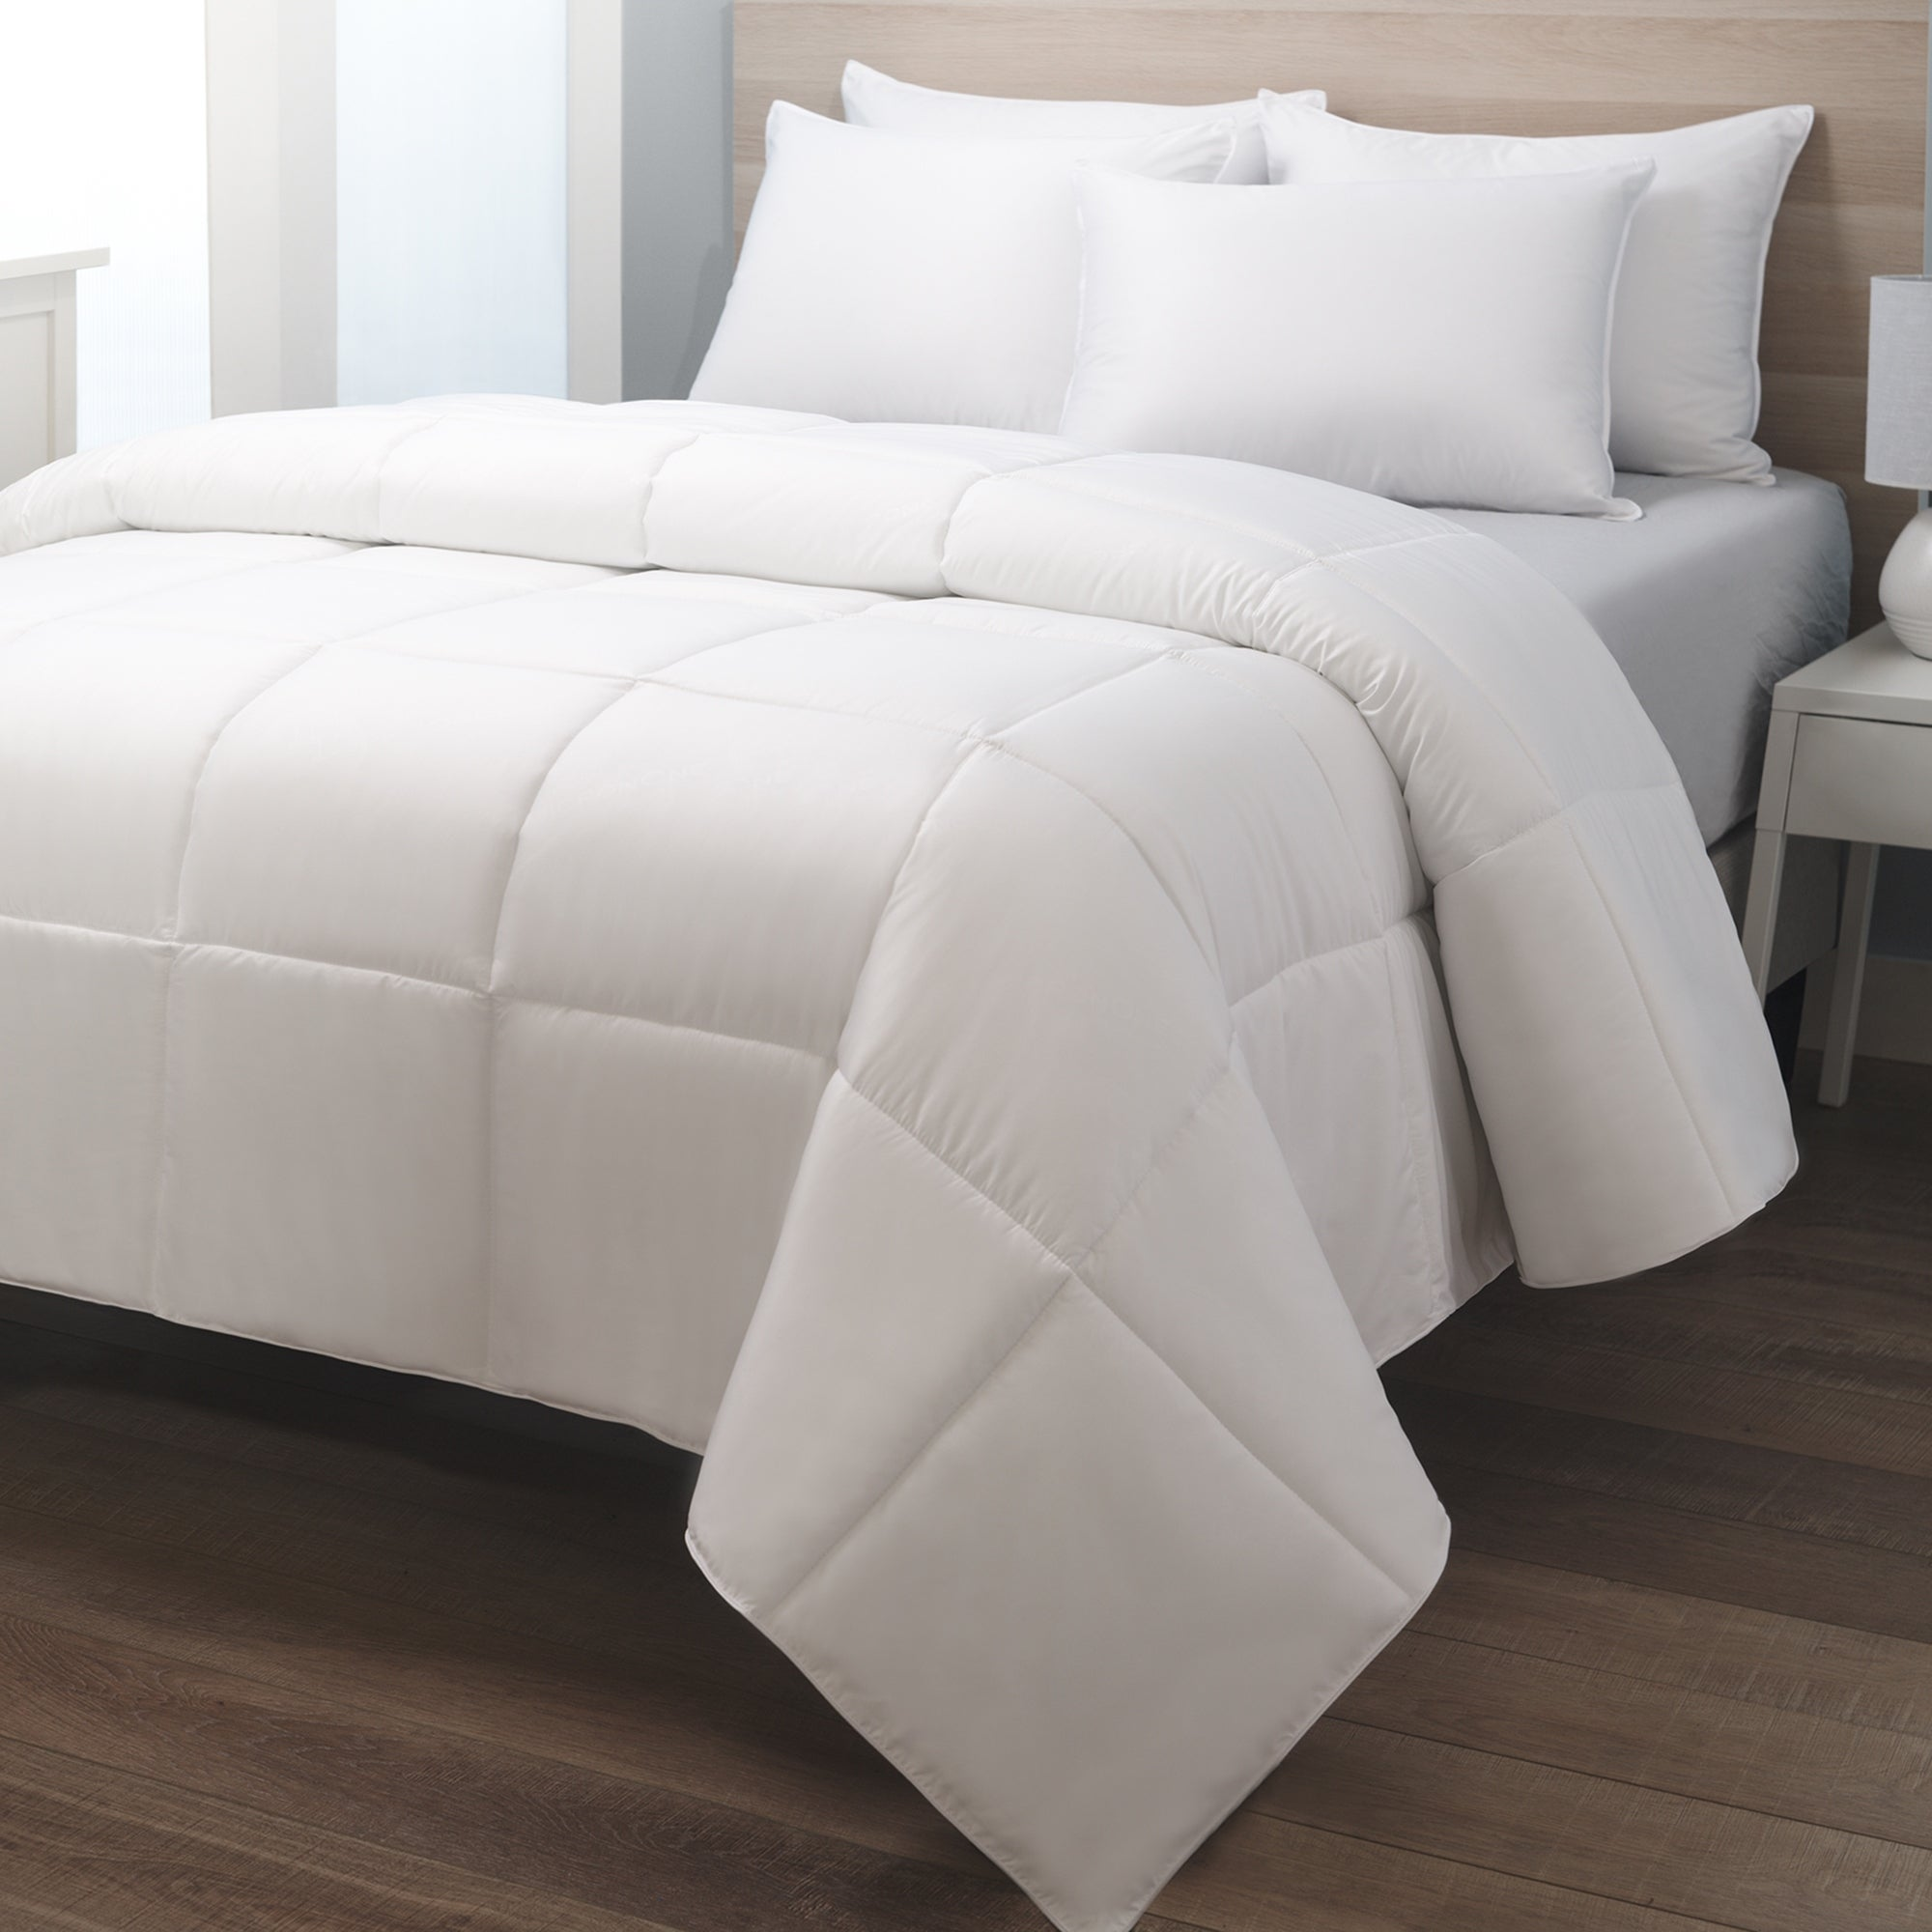 White Goose Down Comforter 233 Thread Count By Cozy Classics On Sale Overstock 32085777